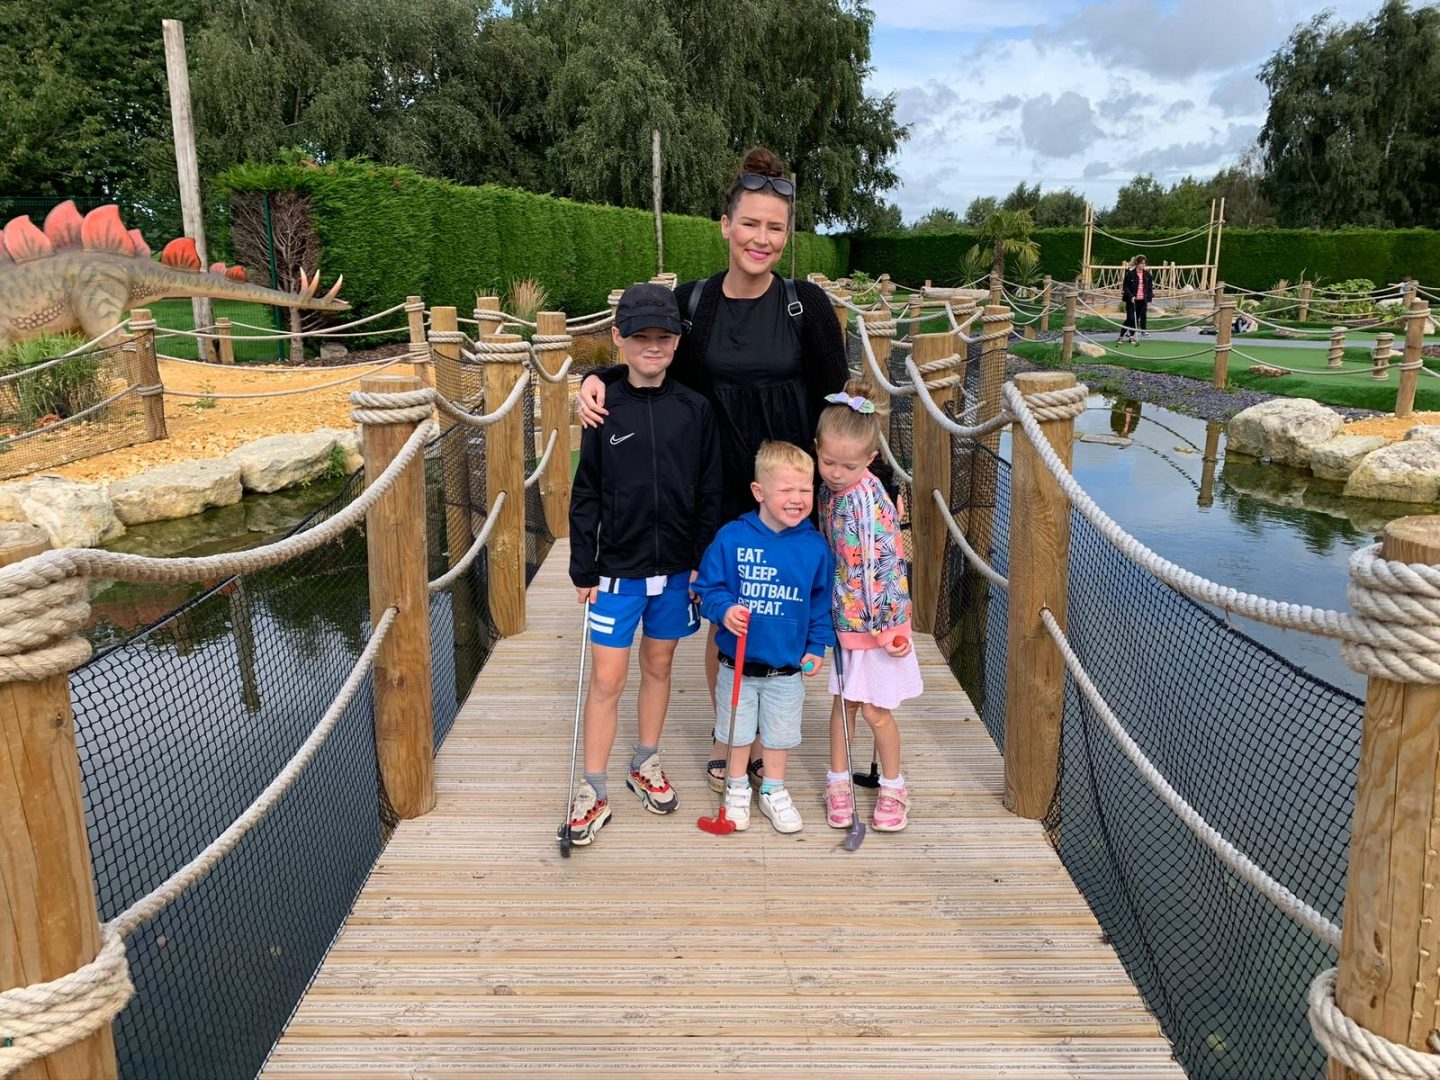 Family day out at Wolverhampton Adventure Golf Dinosaur crazy golf